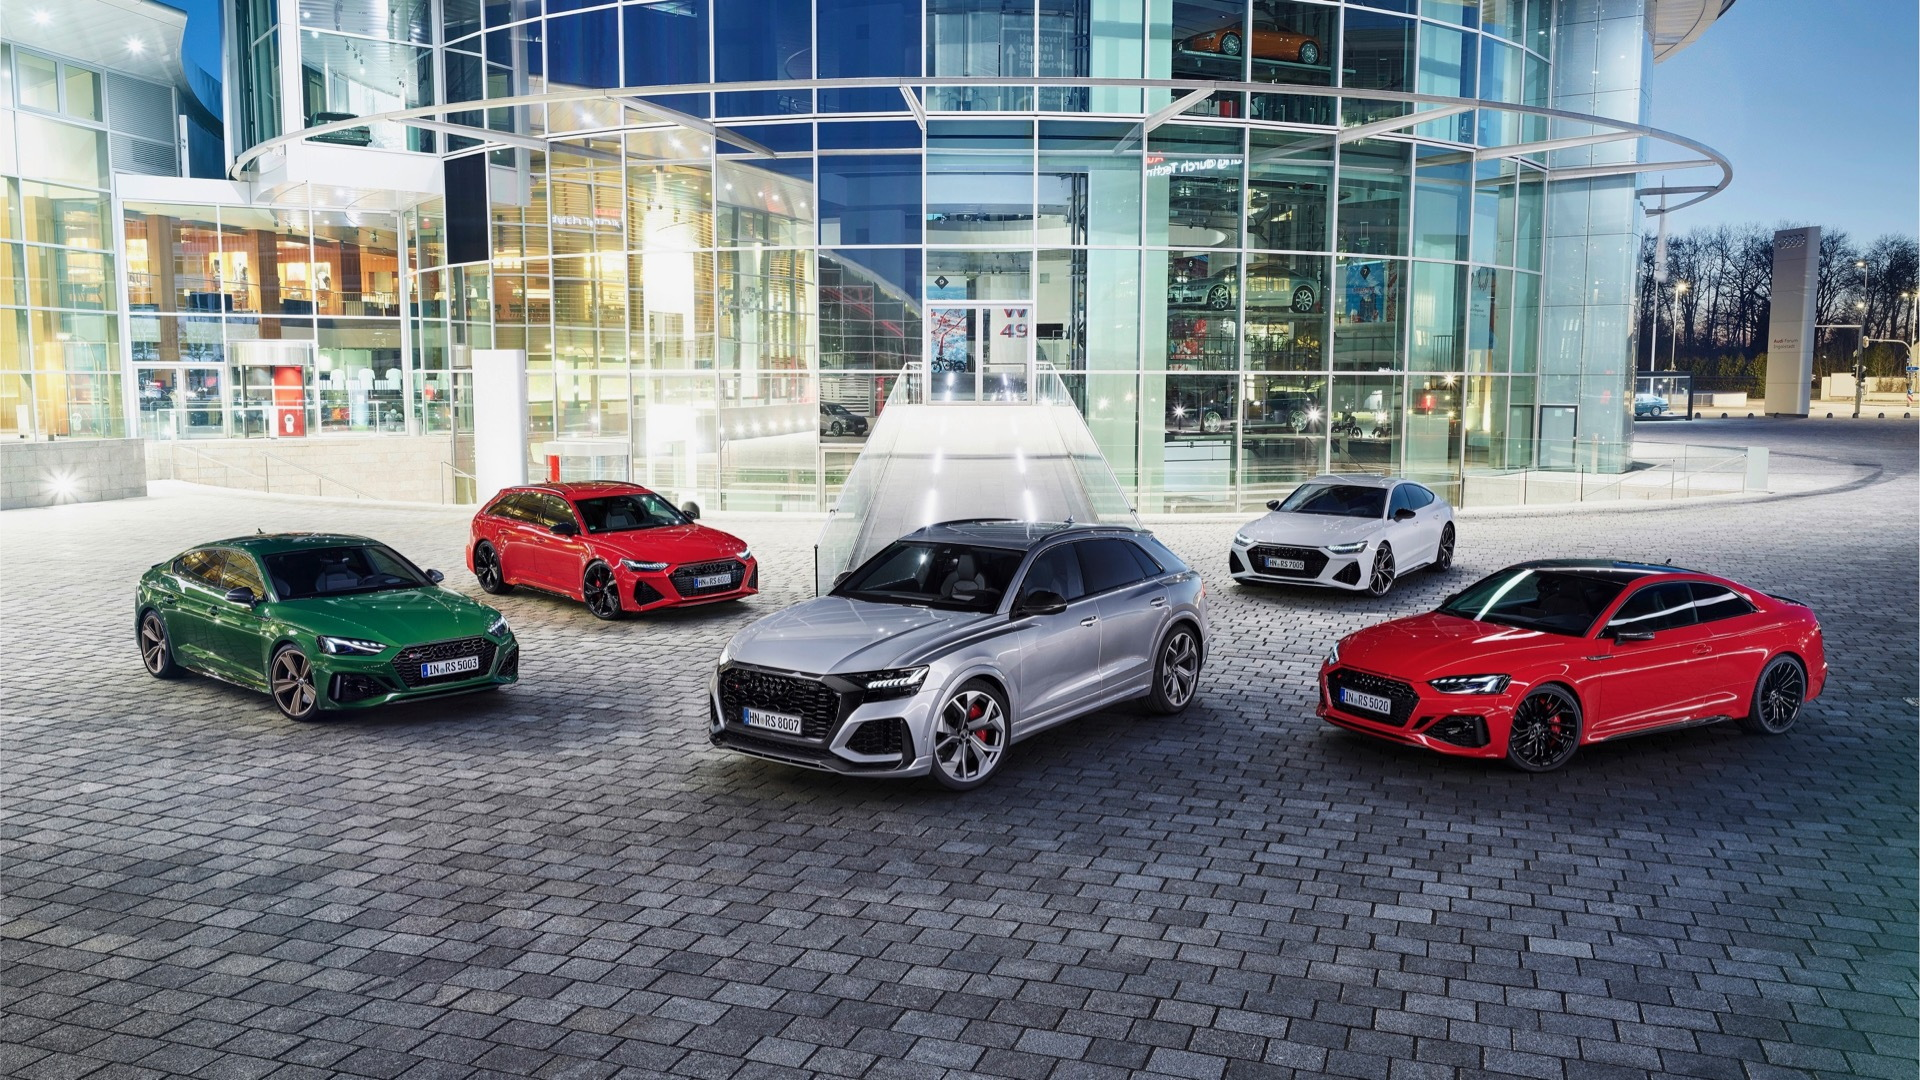 (left to right) Audi RS 5 Sportback, RS 6 Avant, RS Q8, RS 7 Sportback, RS 5 coupe